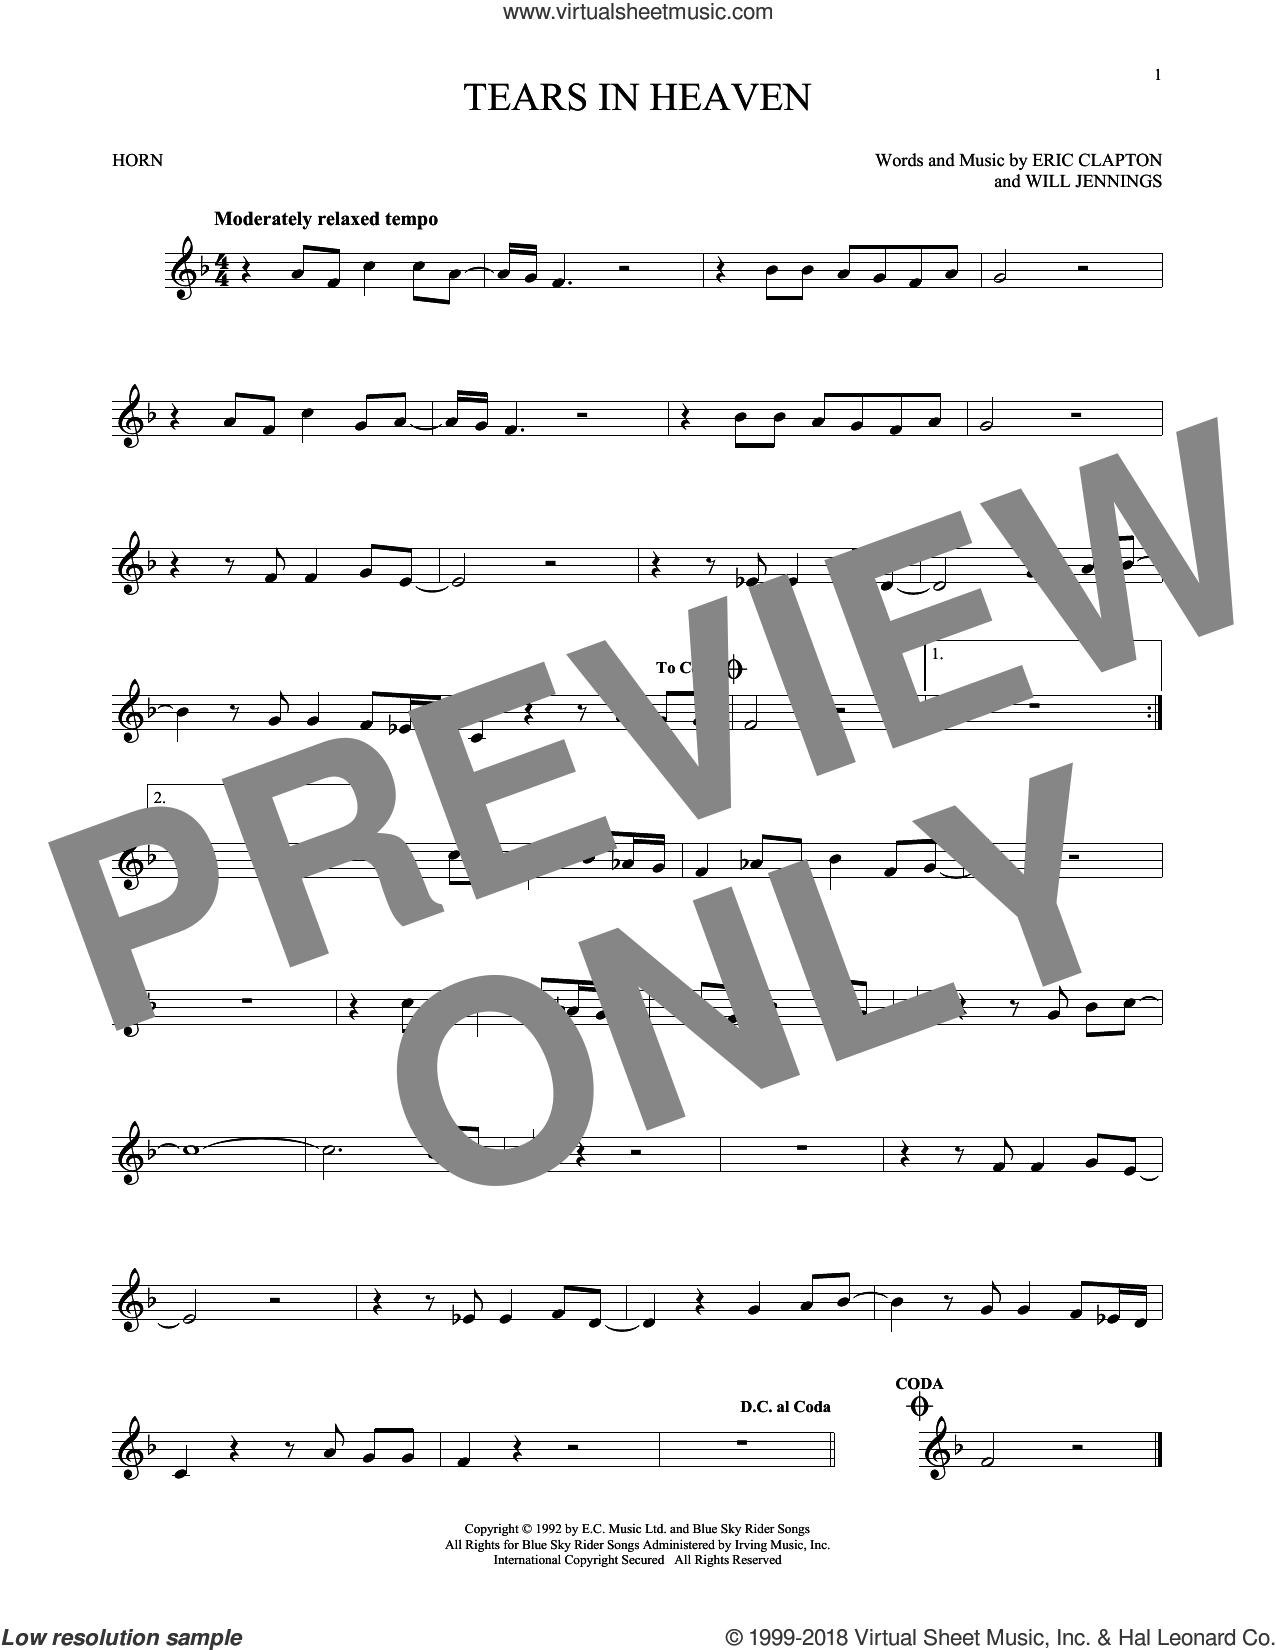 Tears In Heaven sheet music for horn solo by Eric Clapton and Will Jennings, intermediate skill level